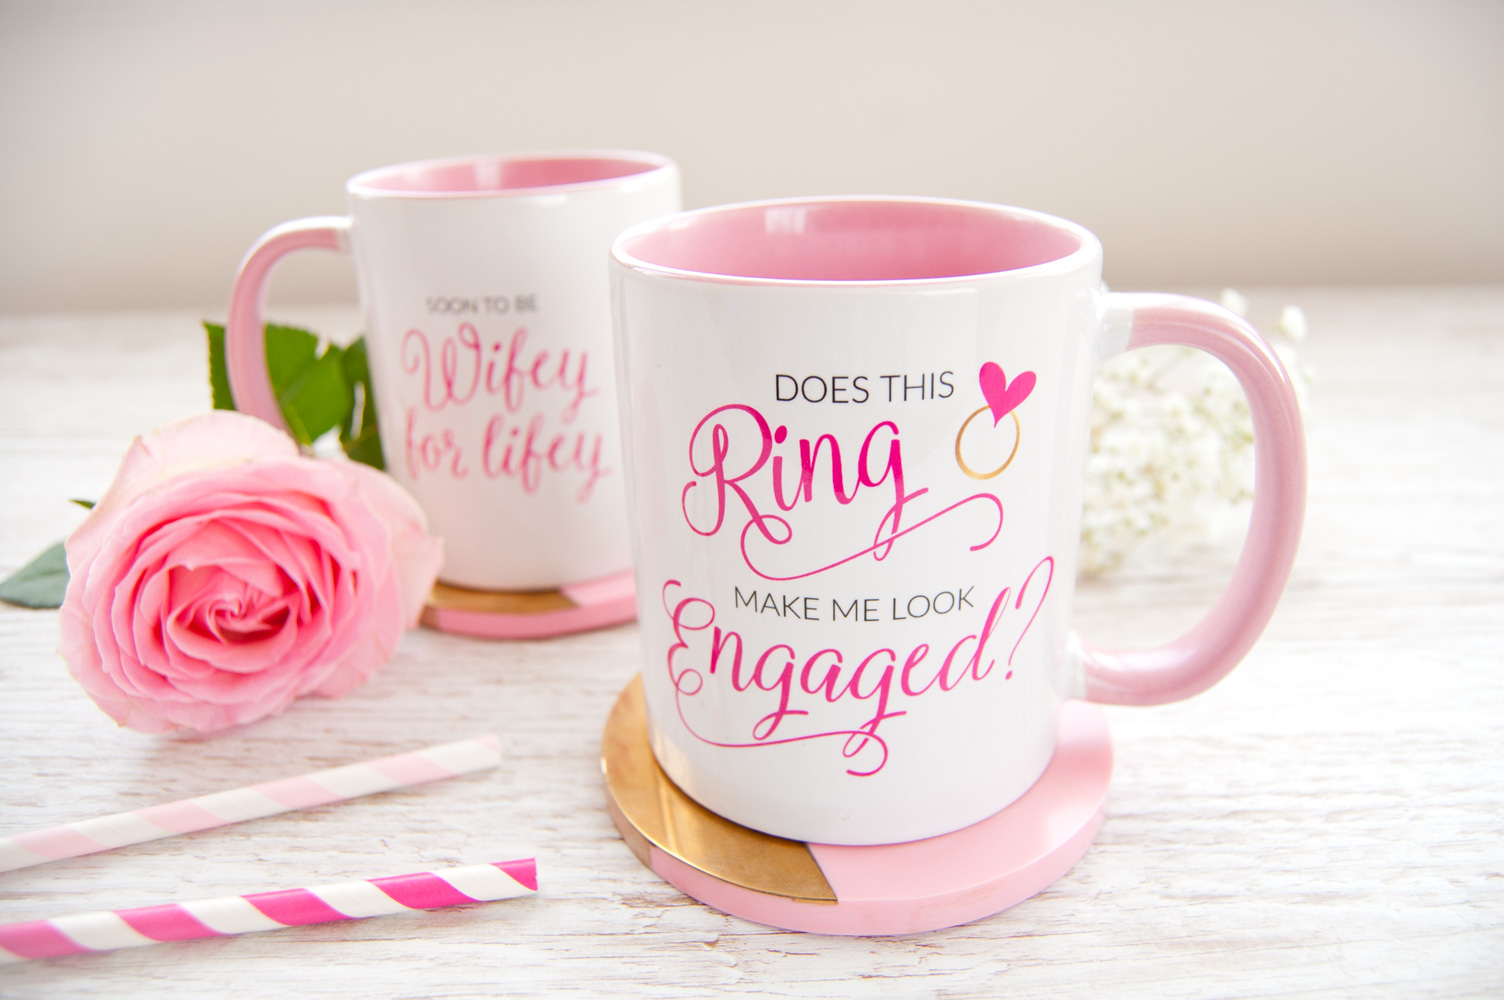 Easter giveaway! Win one of these fun mugs... - Love Our Wedding